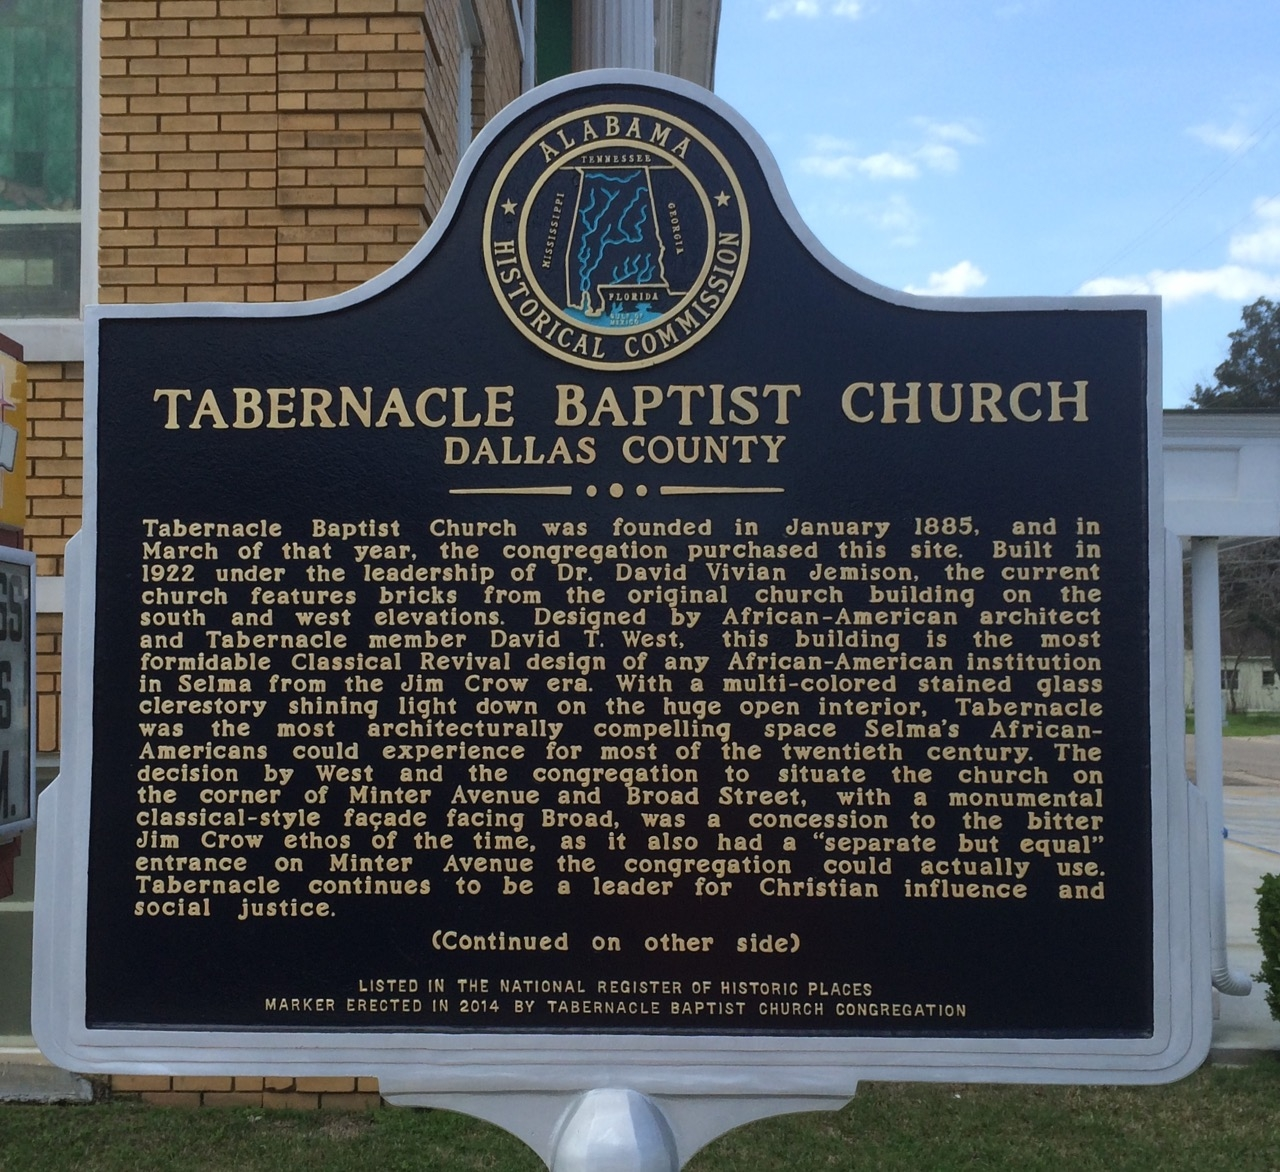 Tabernacle Baptist Church Marker (Side 1)